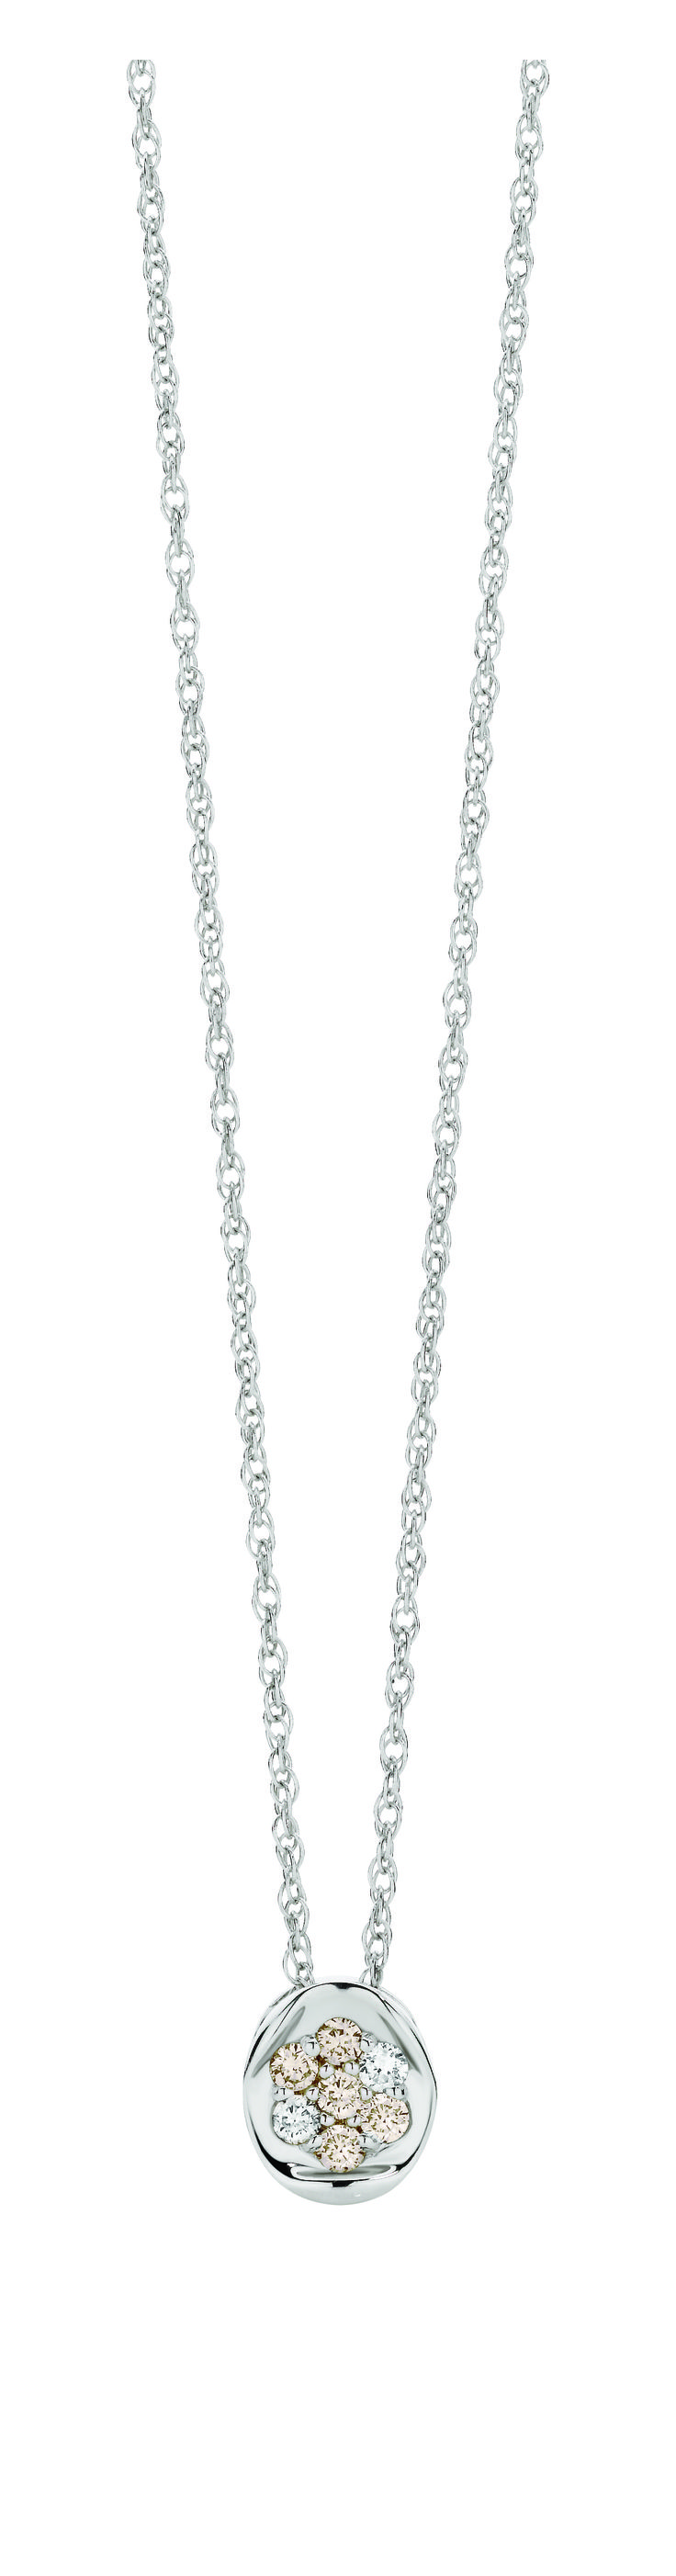 Dreamtime 9ct White Gold 0.15ct Diamond Pendant available only at Showcase Jewellers.